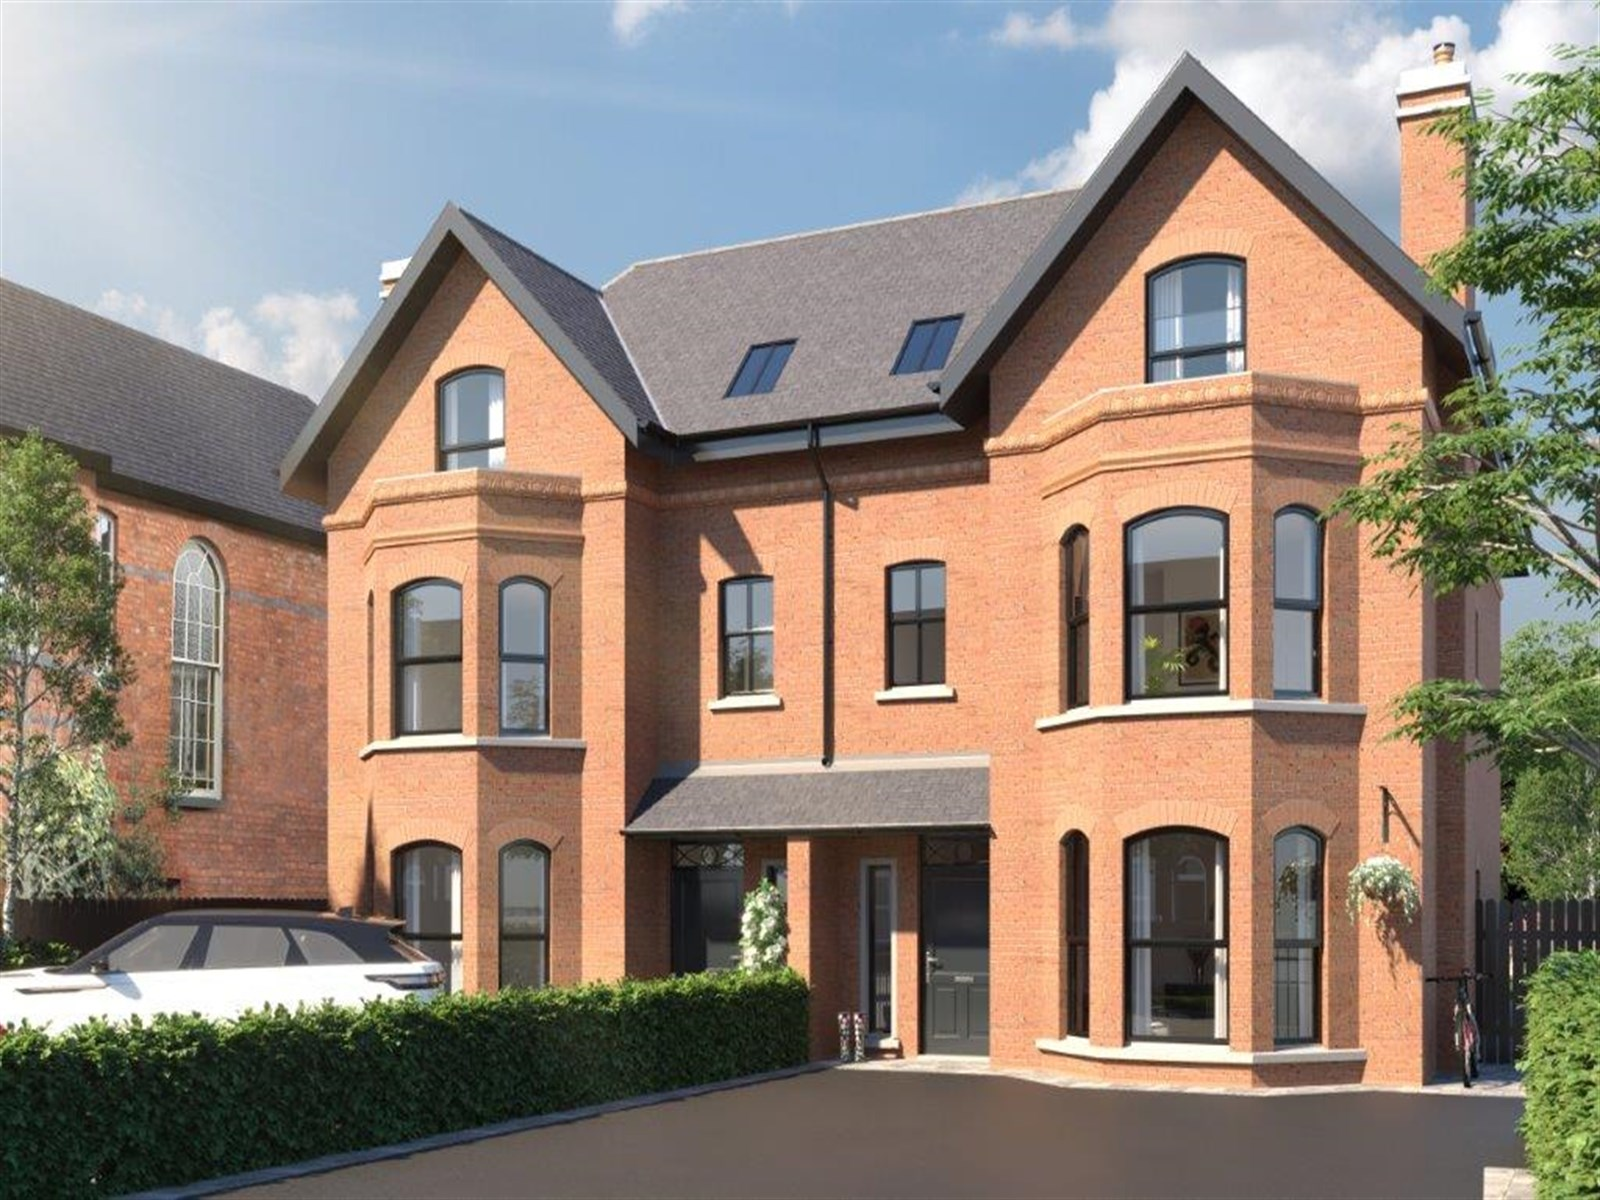 Four/Six Bedroom Option, Brenndarragh, 47a&B Derryvolgie Avenue, Malone Road, Belfast, BT9 6FP